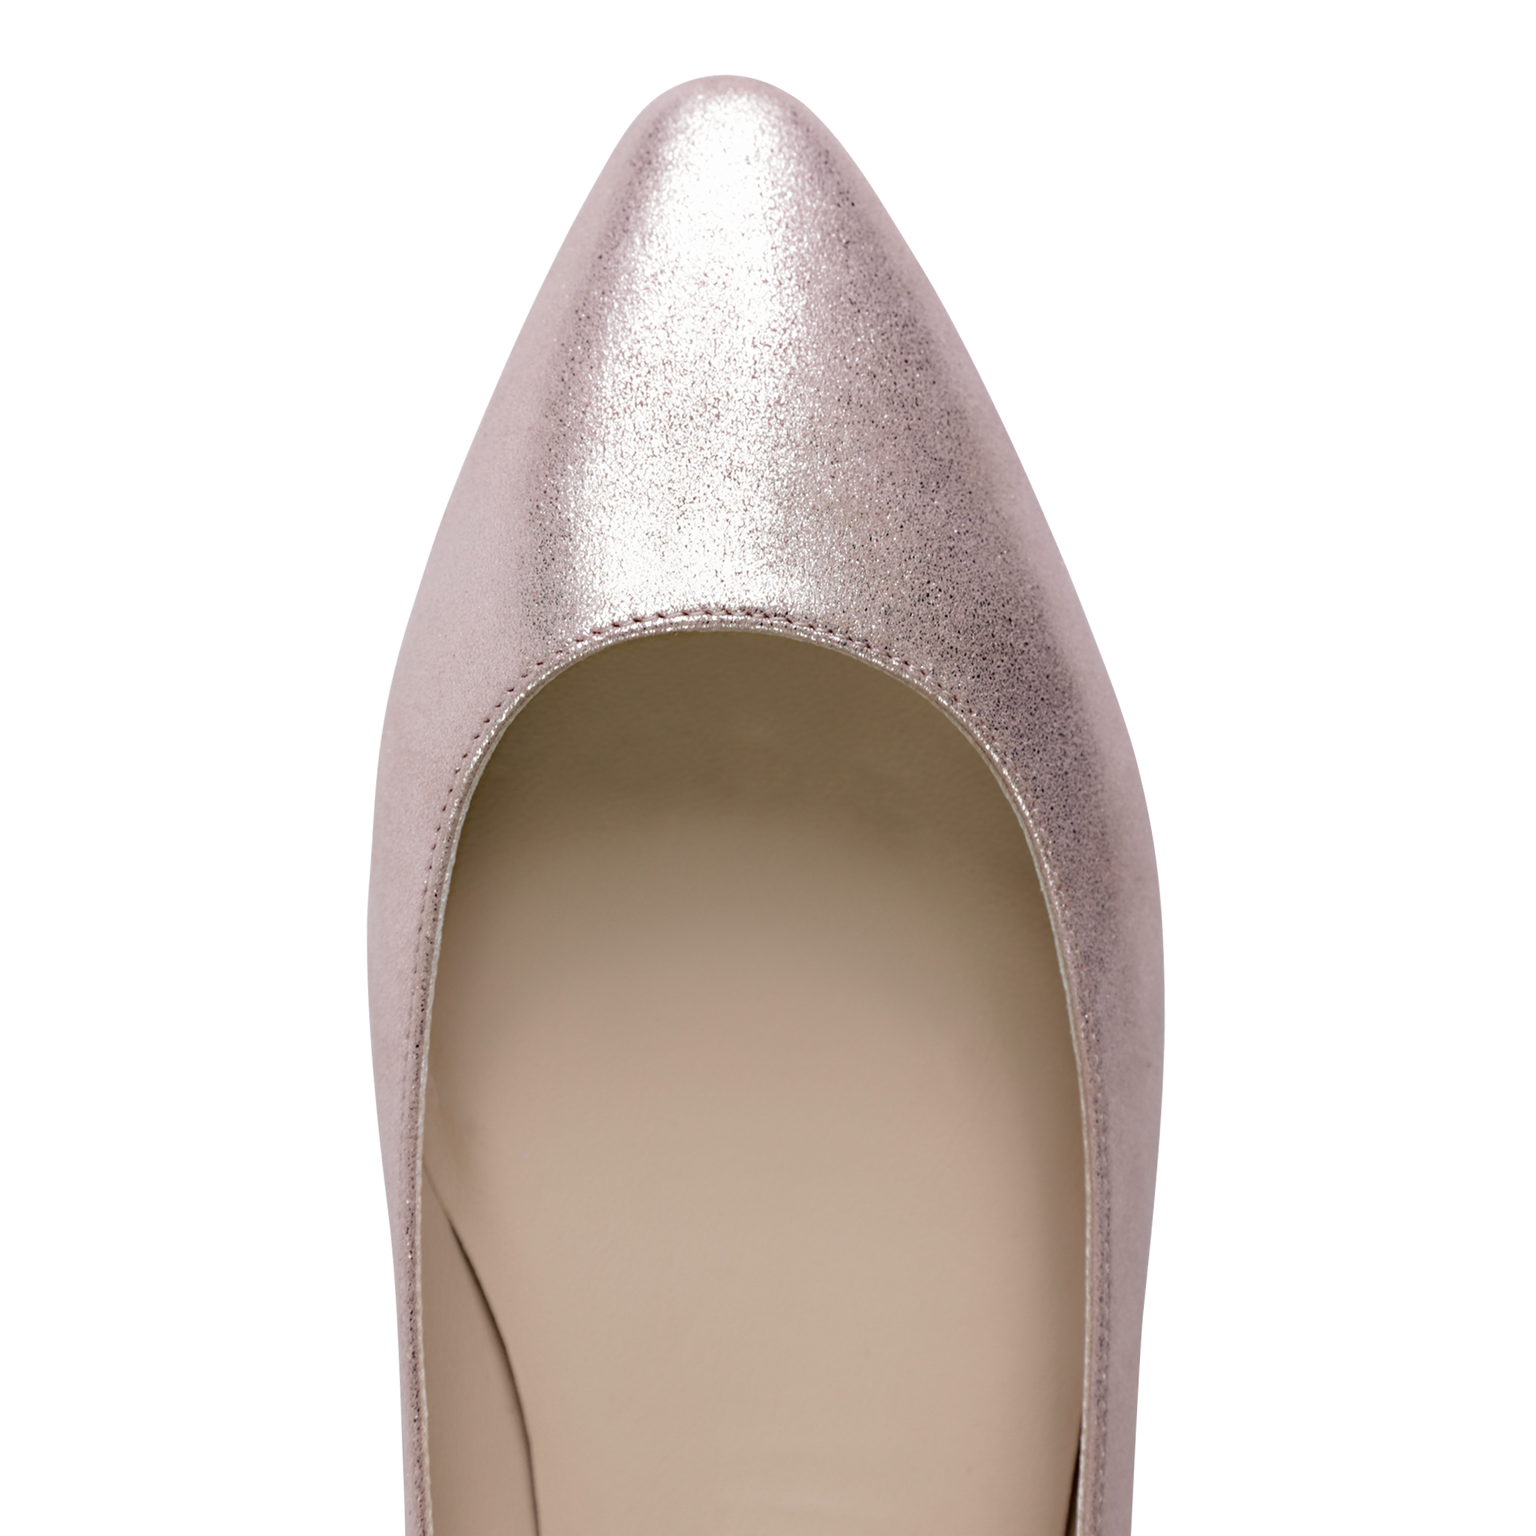 SIENA - Burma Rose Gold, VIAJIYU - Women's Hand Made Sustainable Luxury Shoes. Made in Italy. Made to Order.